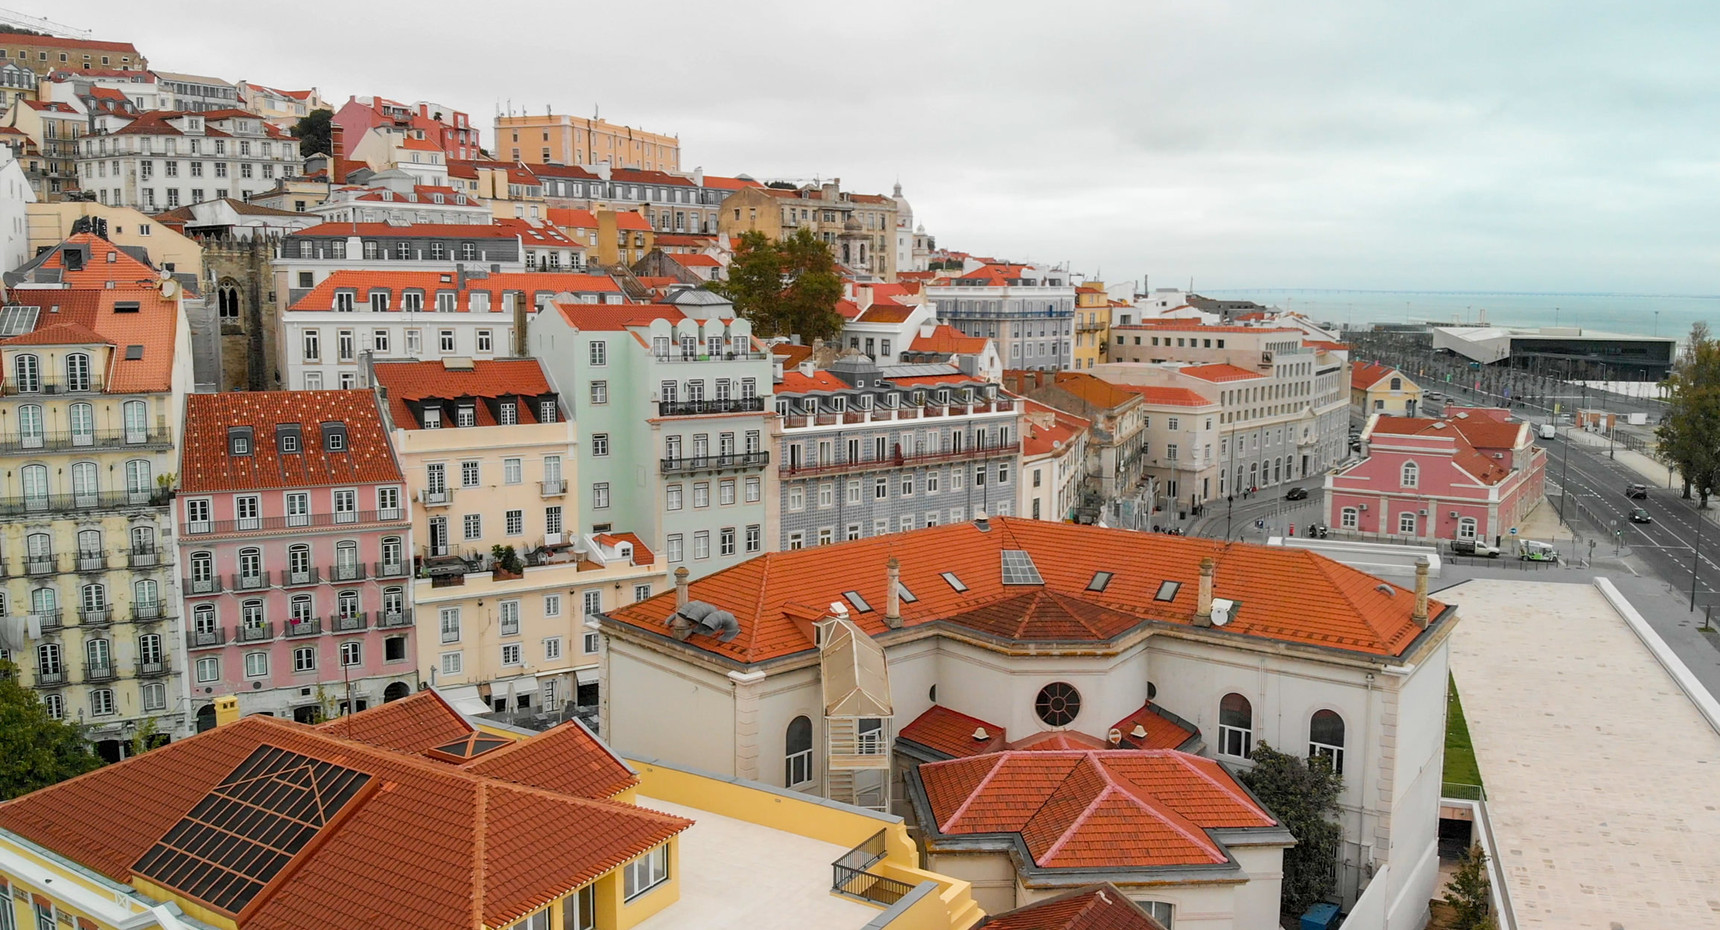 Aerial view of old city buildings